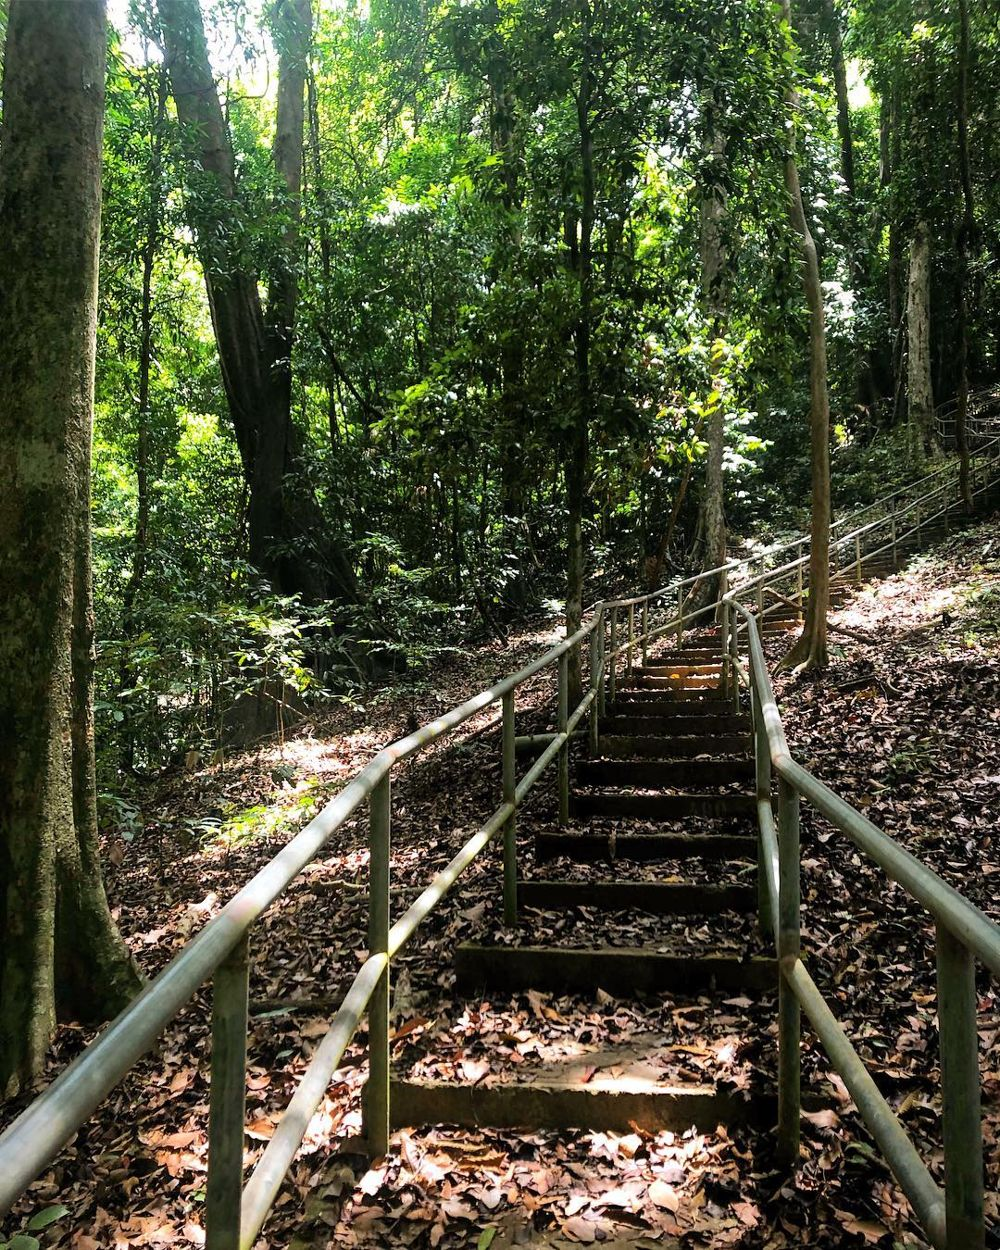 Staircase hiking trail at Mount Raya, Langkawi